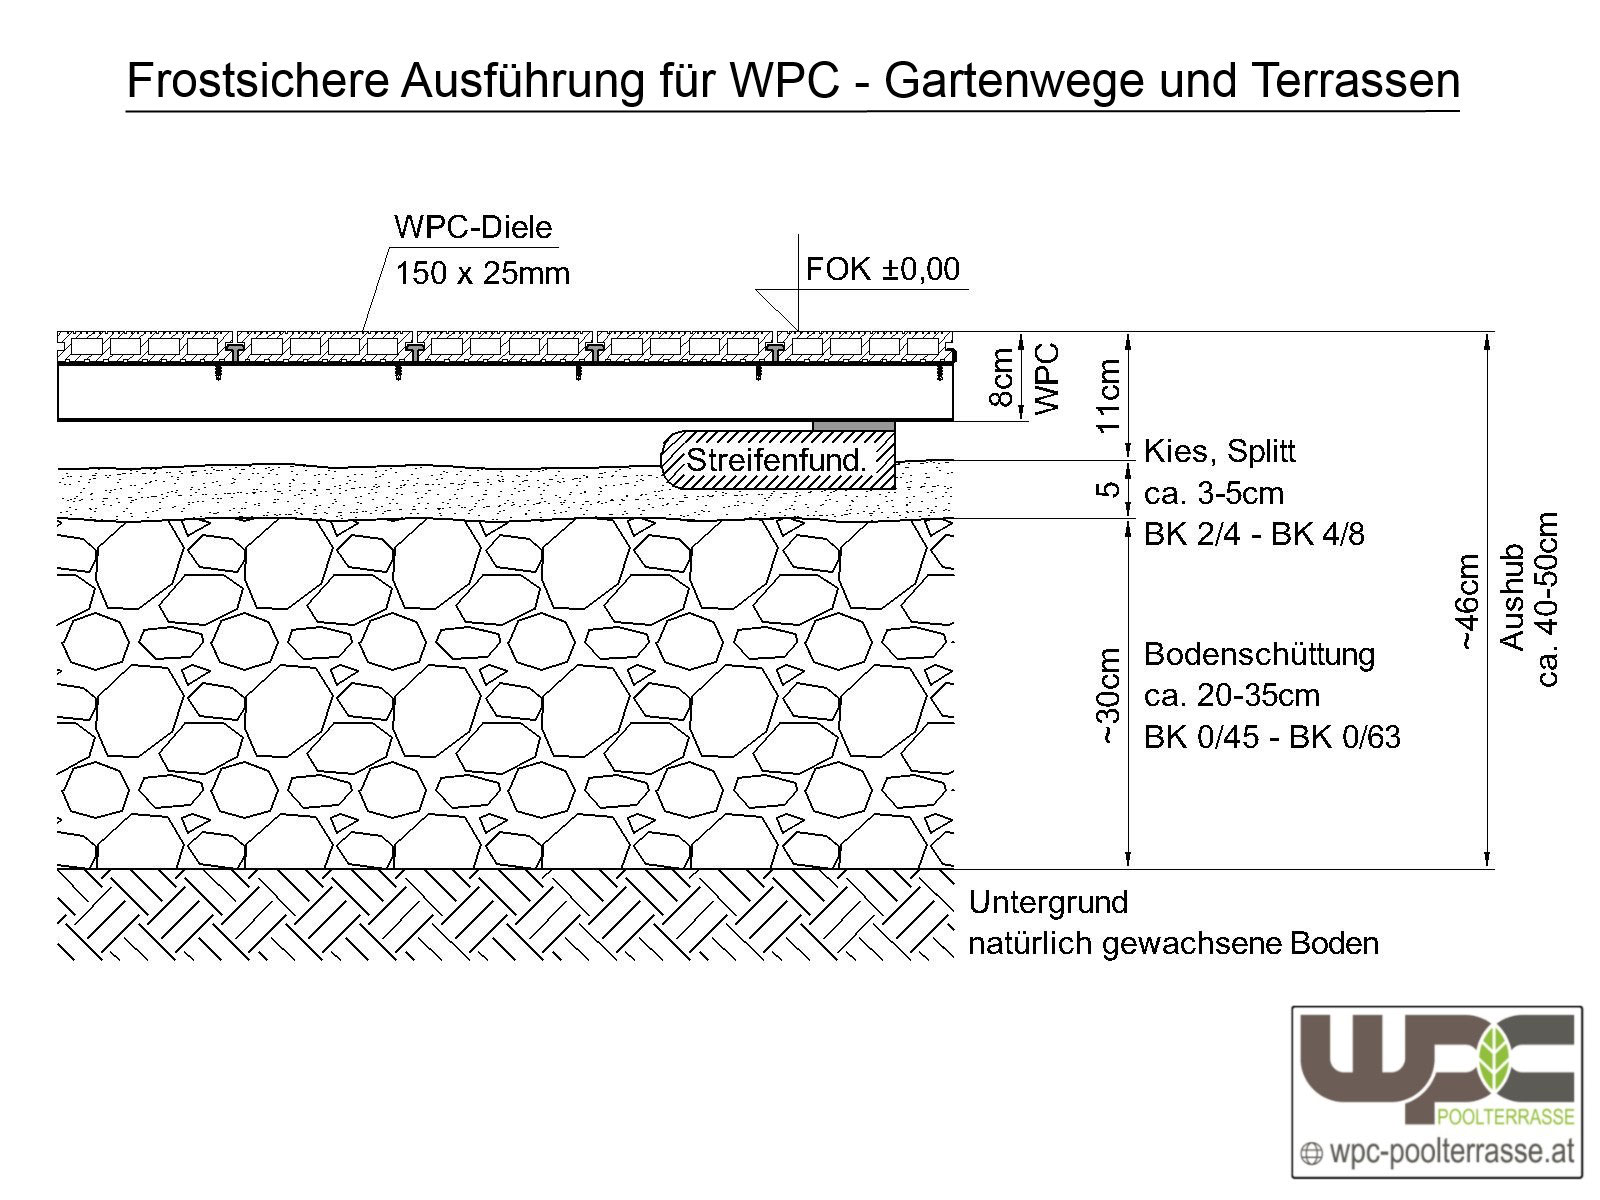 Wpc Hohlkammer Oder Massiv Wpc Unterbau Wpc Mm Fr M With Wpc Unterbau Beautiful Wpc